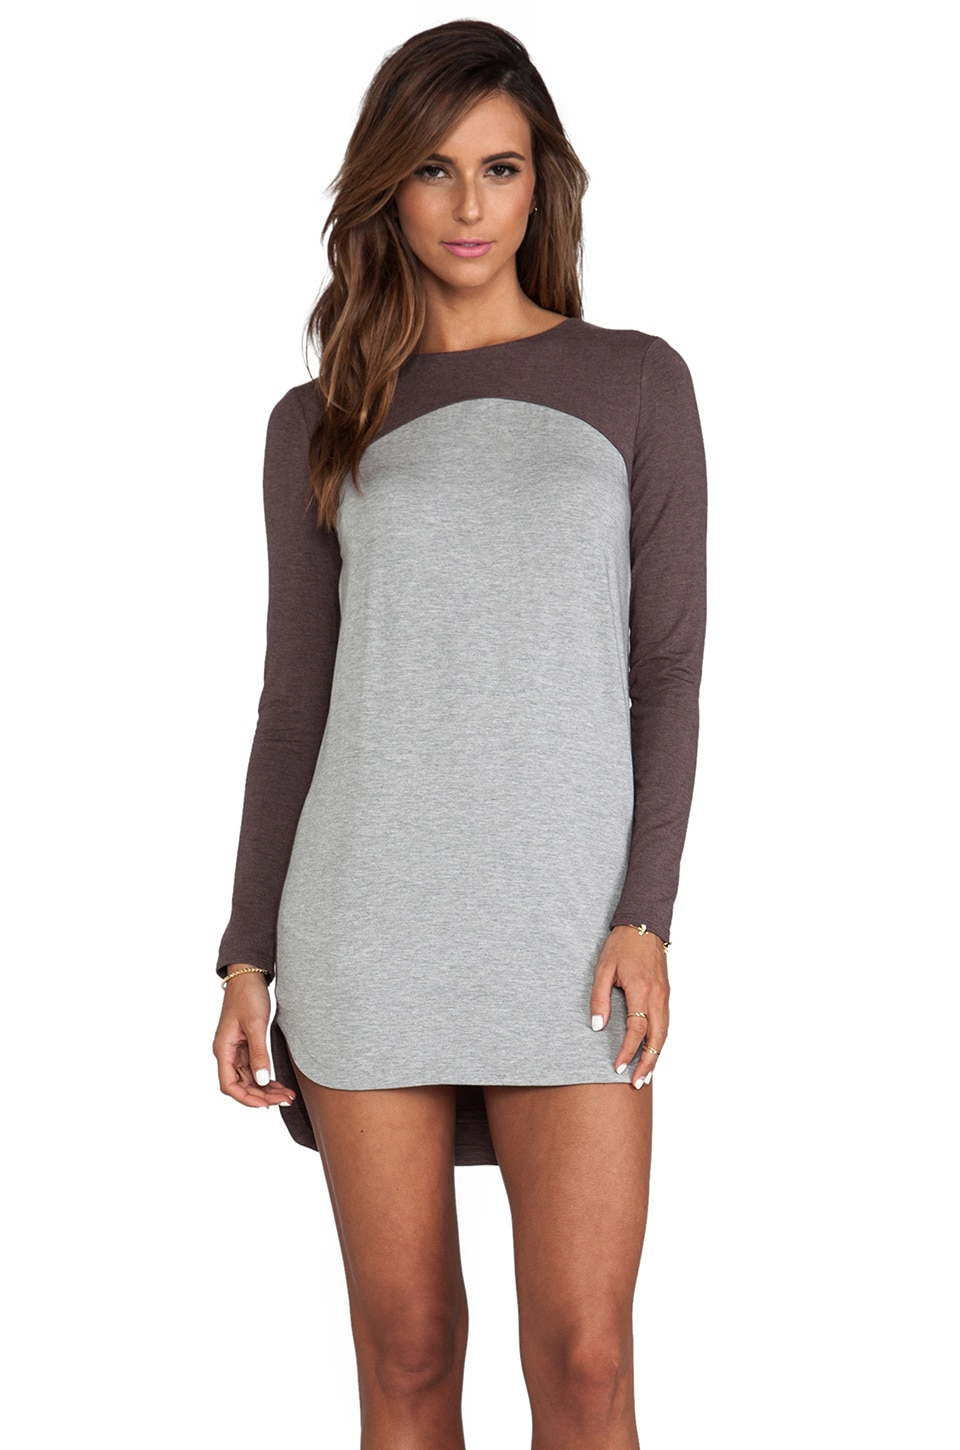 Heather Colorblock Shift Dress in Heather Mocha & Grey